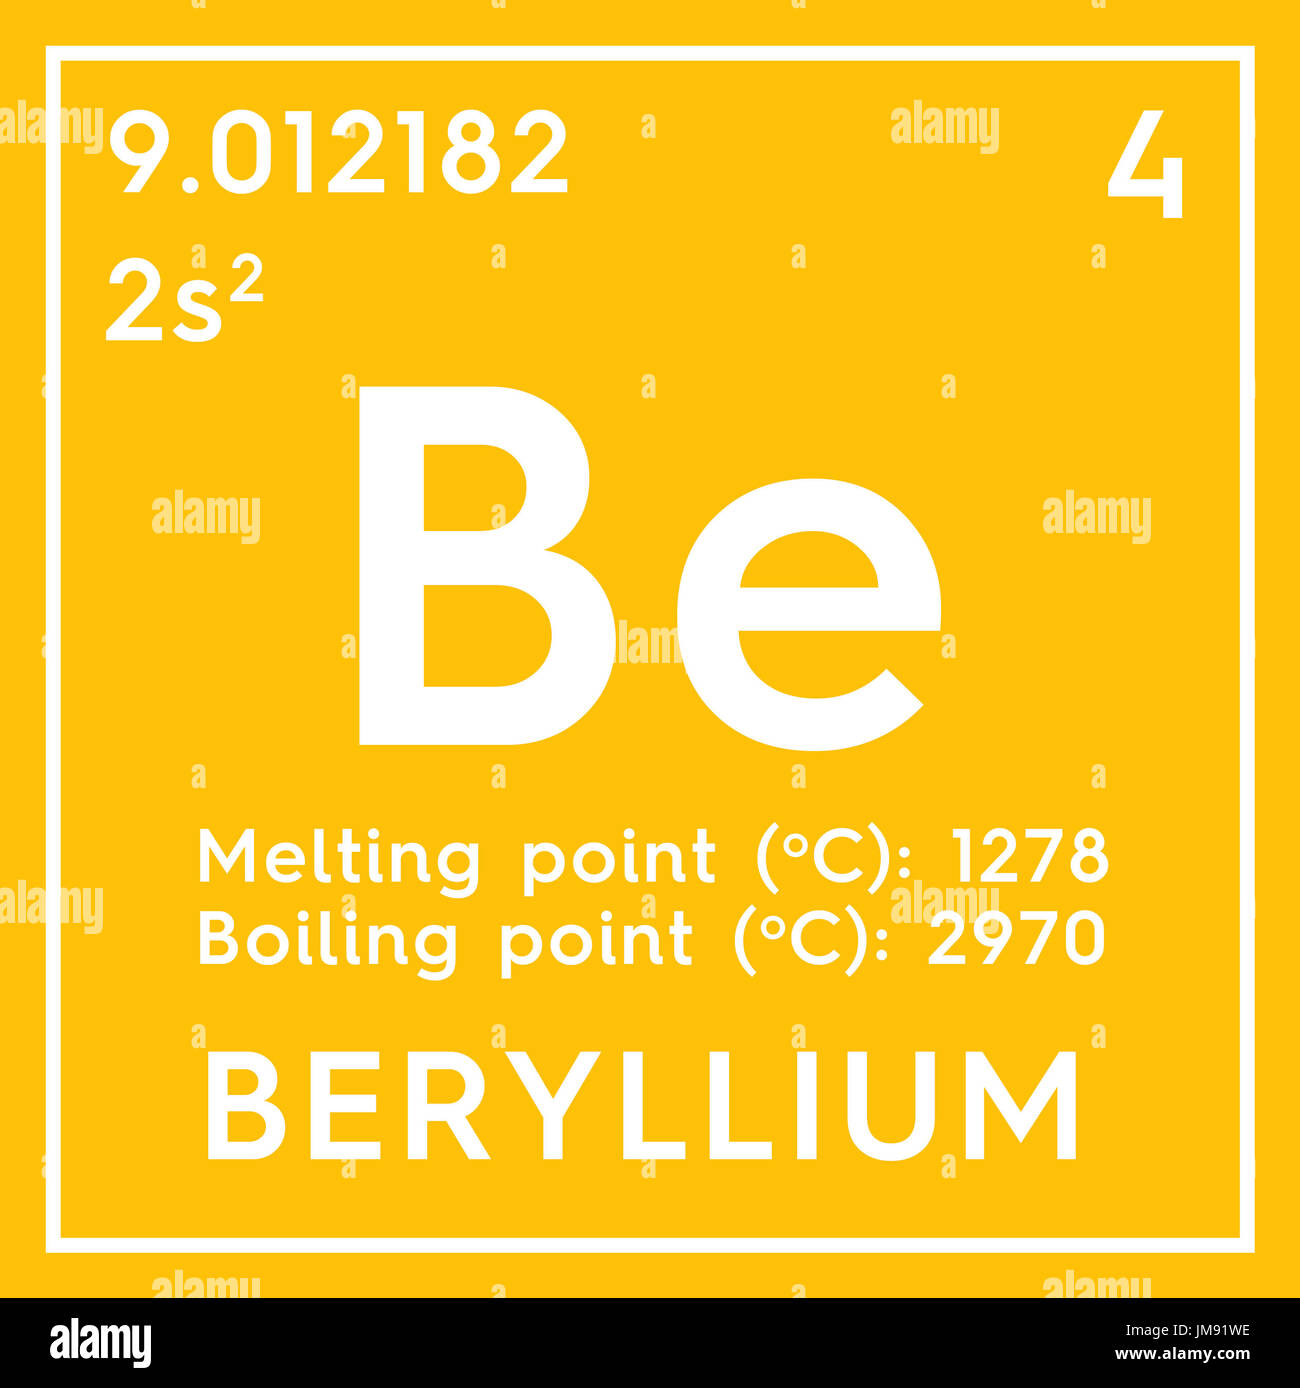 Beryllium alkaline earth metals chemical element of mendeleevs beryllium alkaline earth metals chemical element of mendeleevs periodic table beryllium in square cube creative concept buycottarizona Image collections